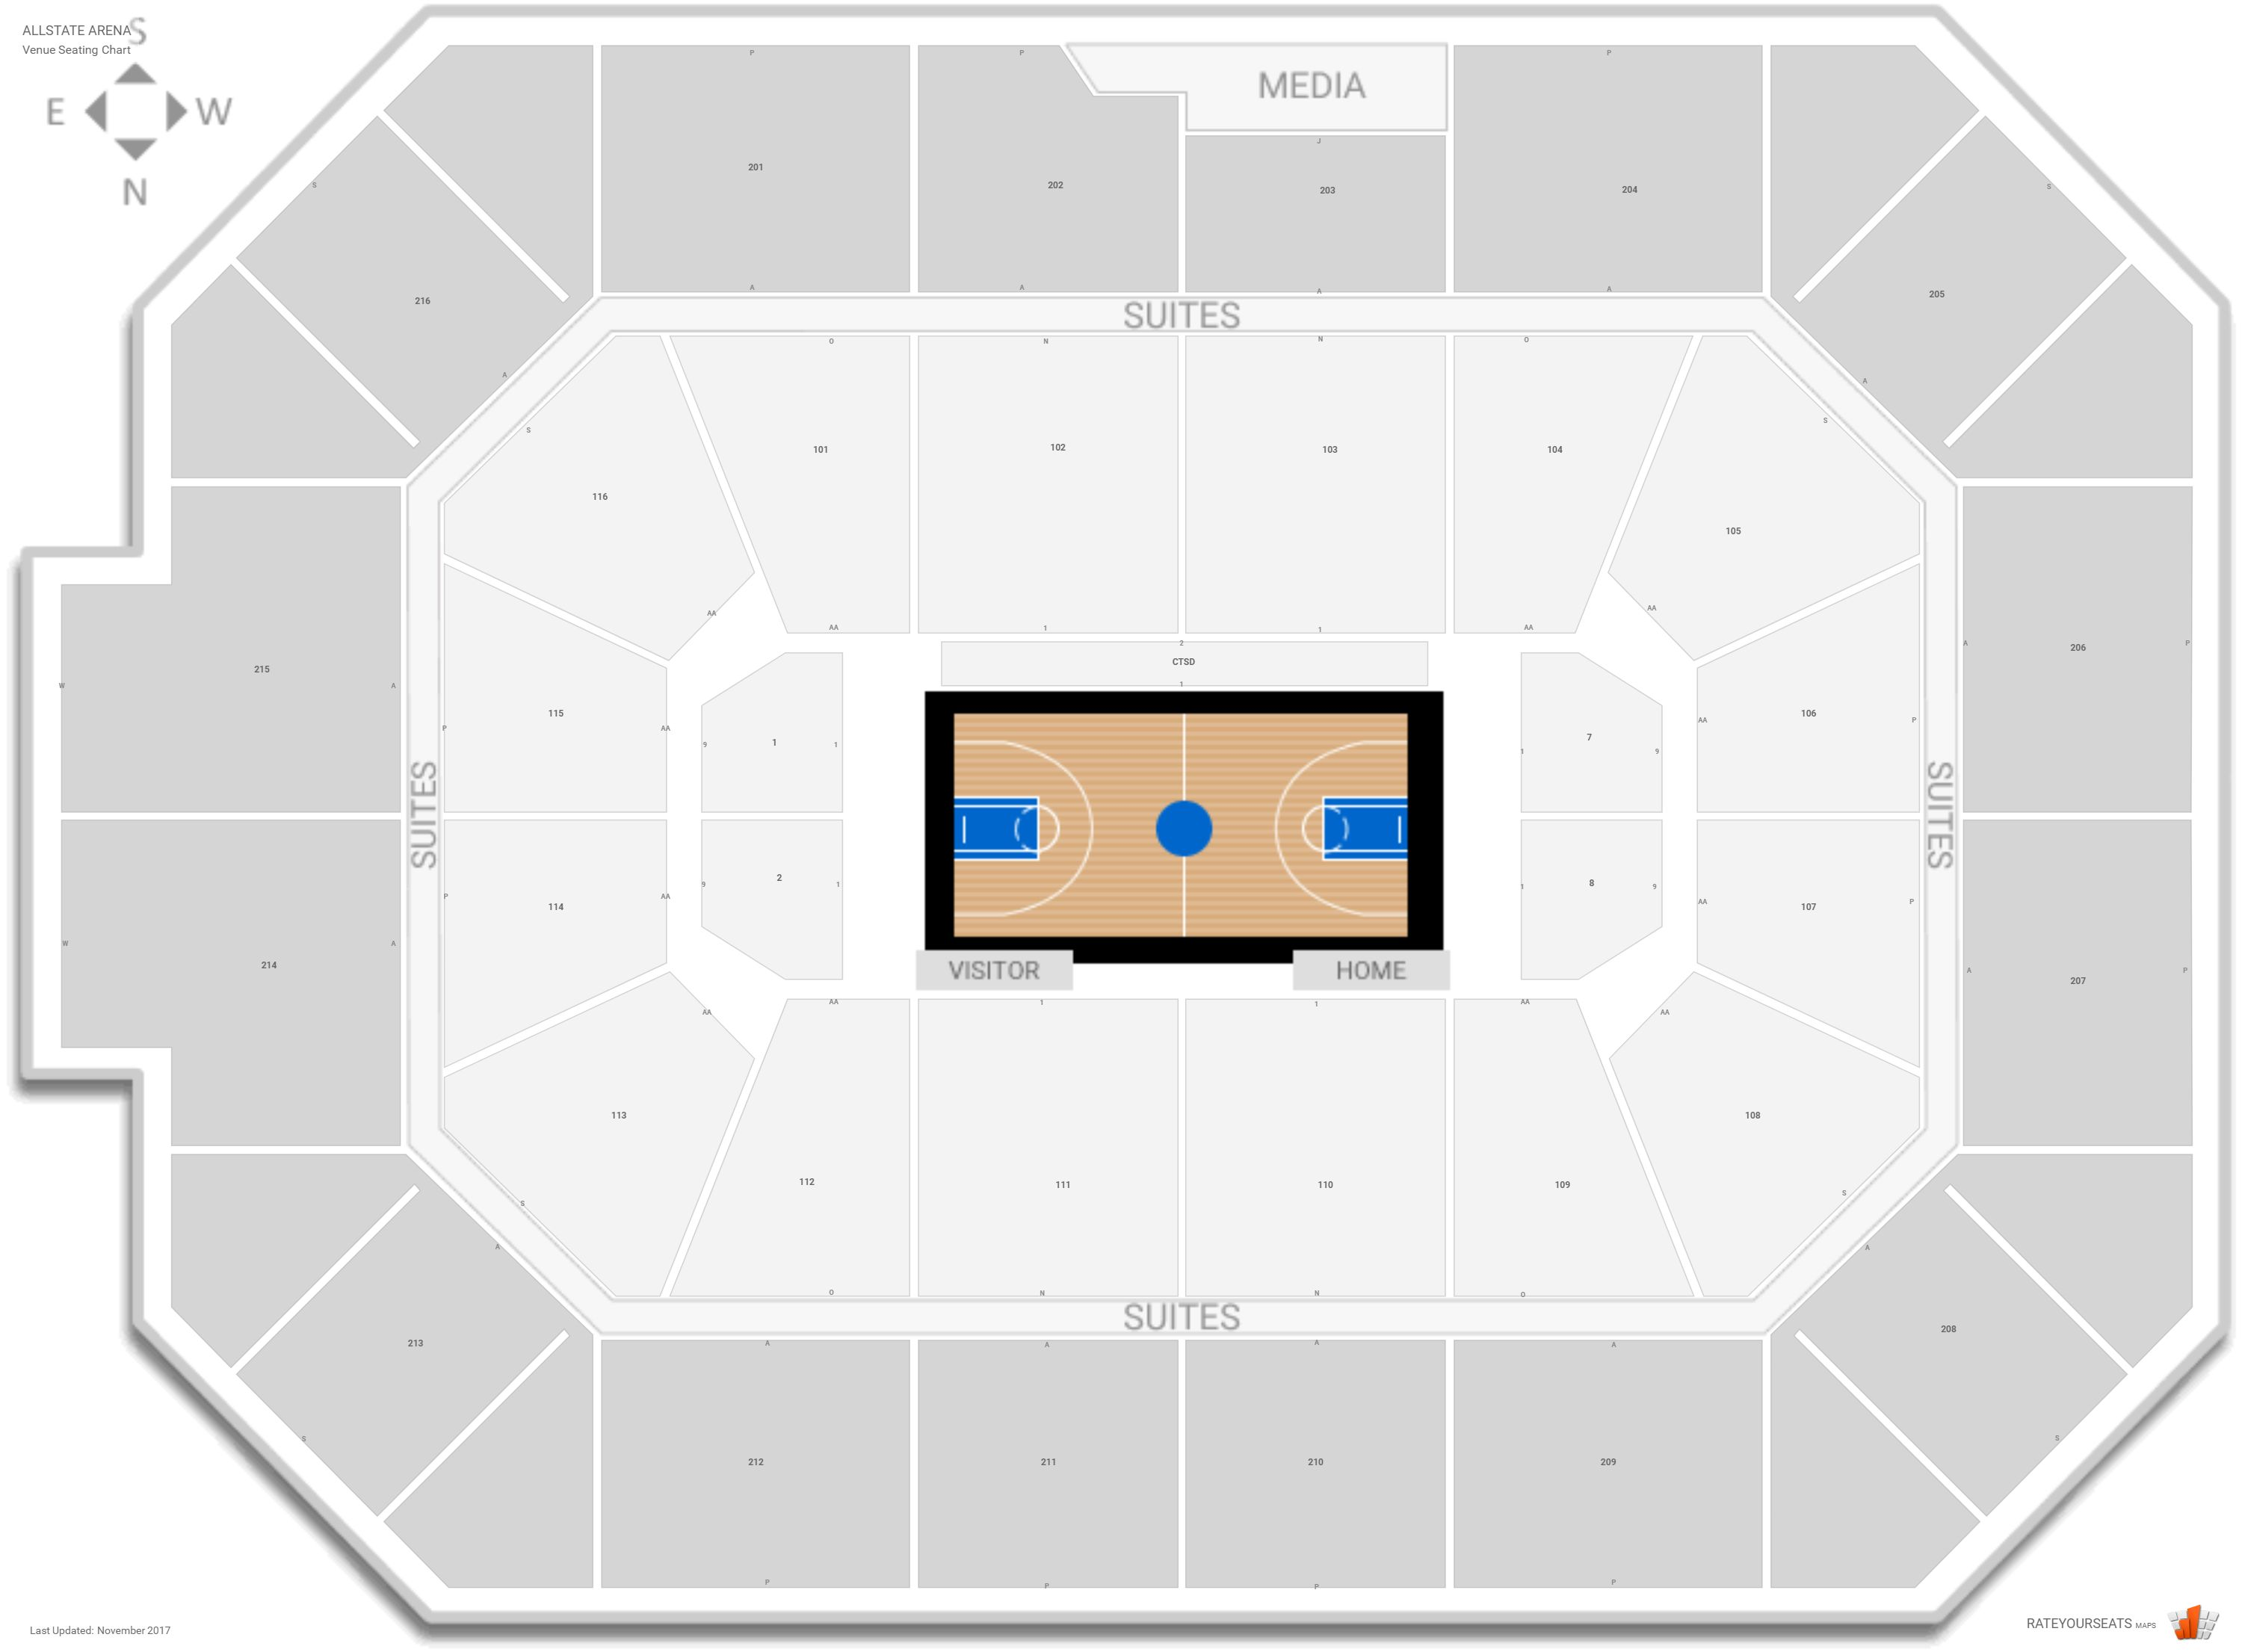 Allstate Arena Seating Chart with Row Numbers